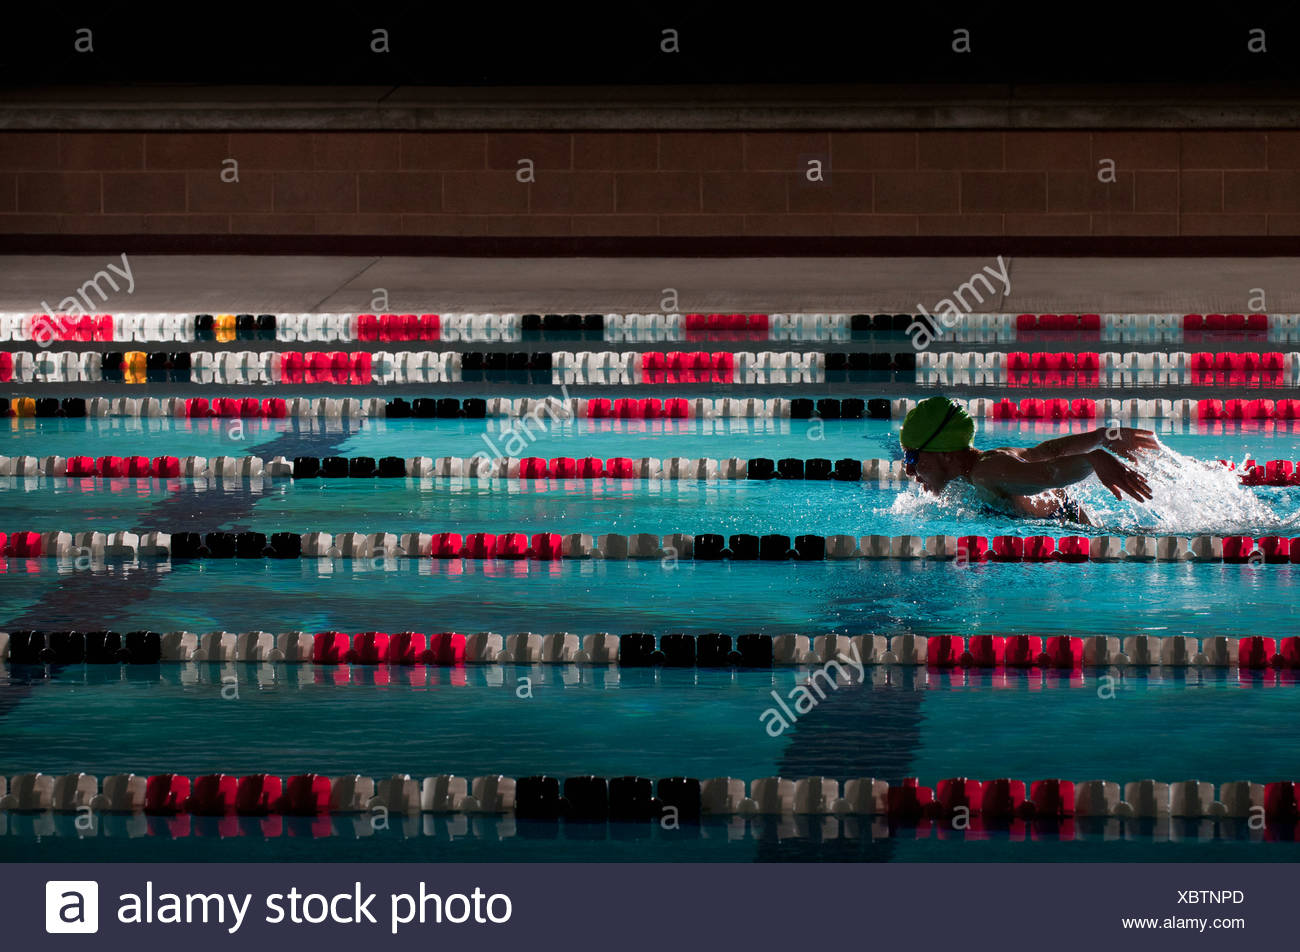 Woman swimming laps in pool Photo Stock